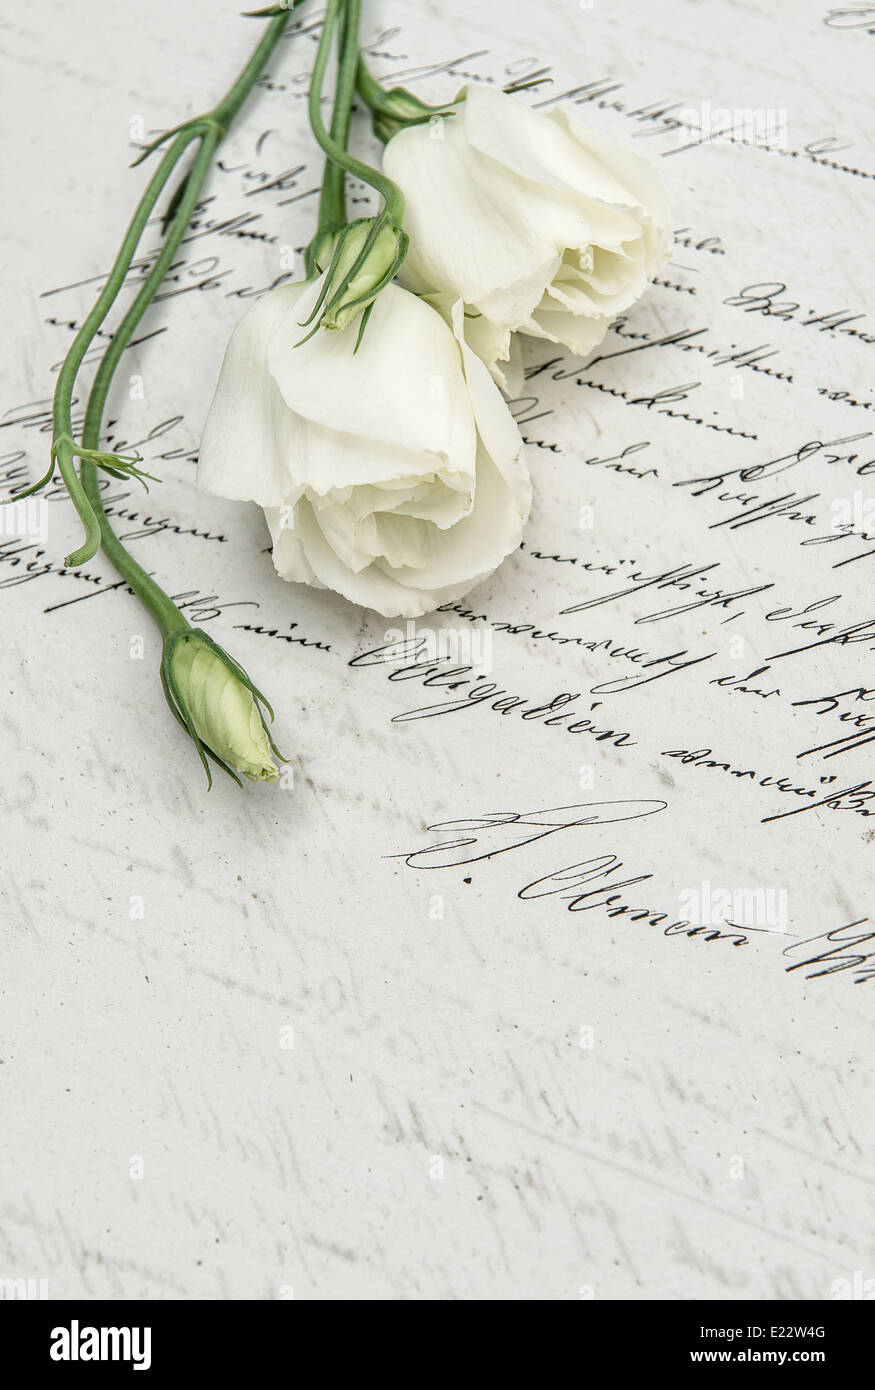 antique handwritten love letter and flowers. nostalgic sentimental background. retro style toned picture - Stock Image